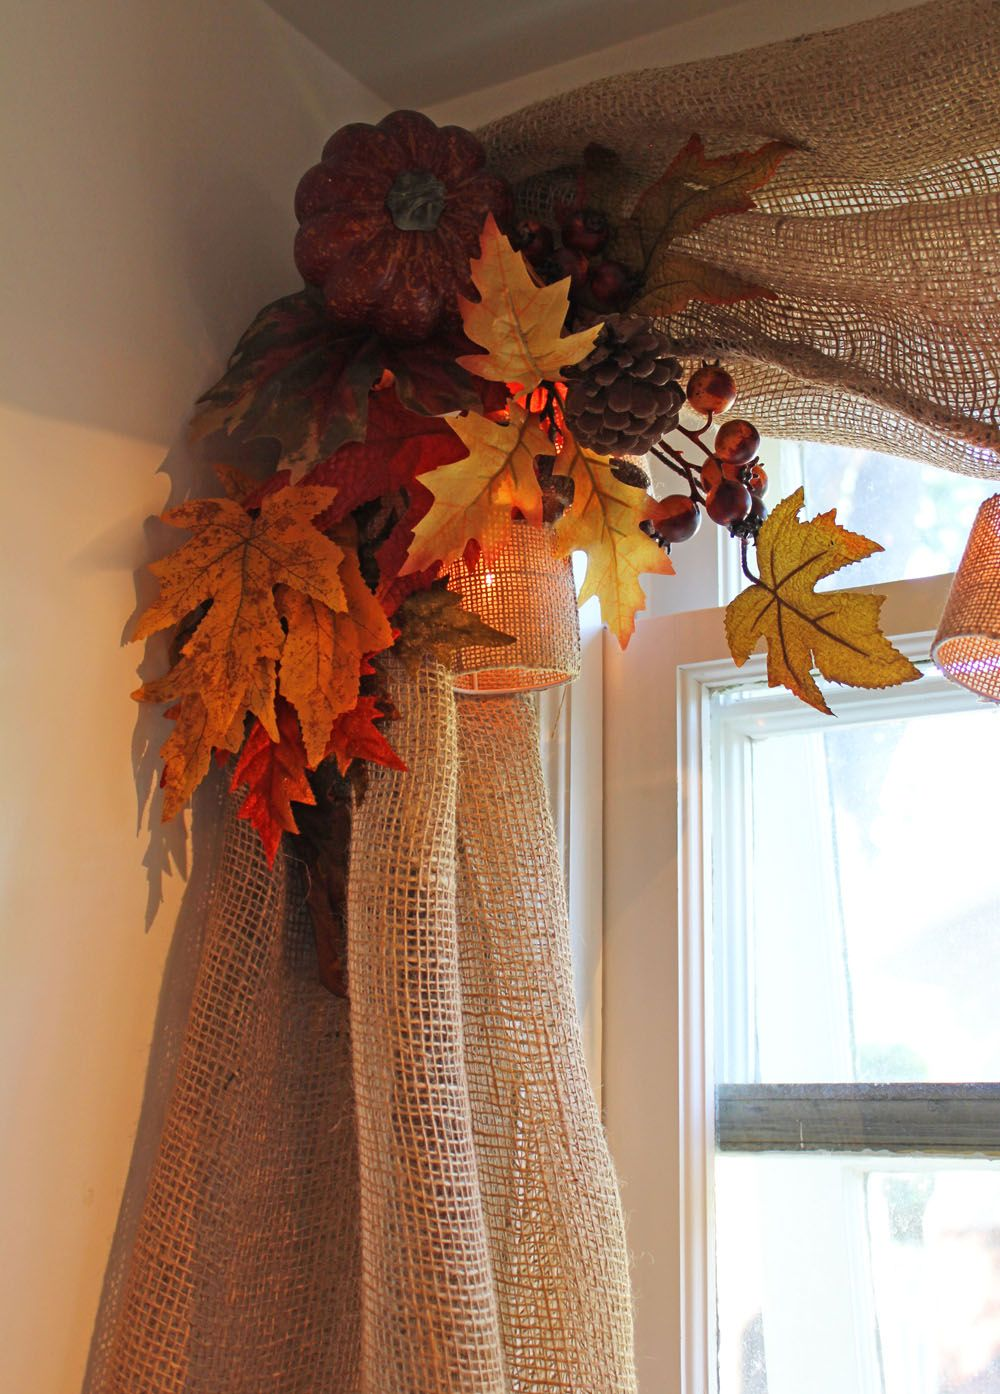 The Bachman S Fall 2014 Ideas House Tour Fall